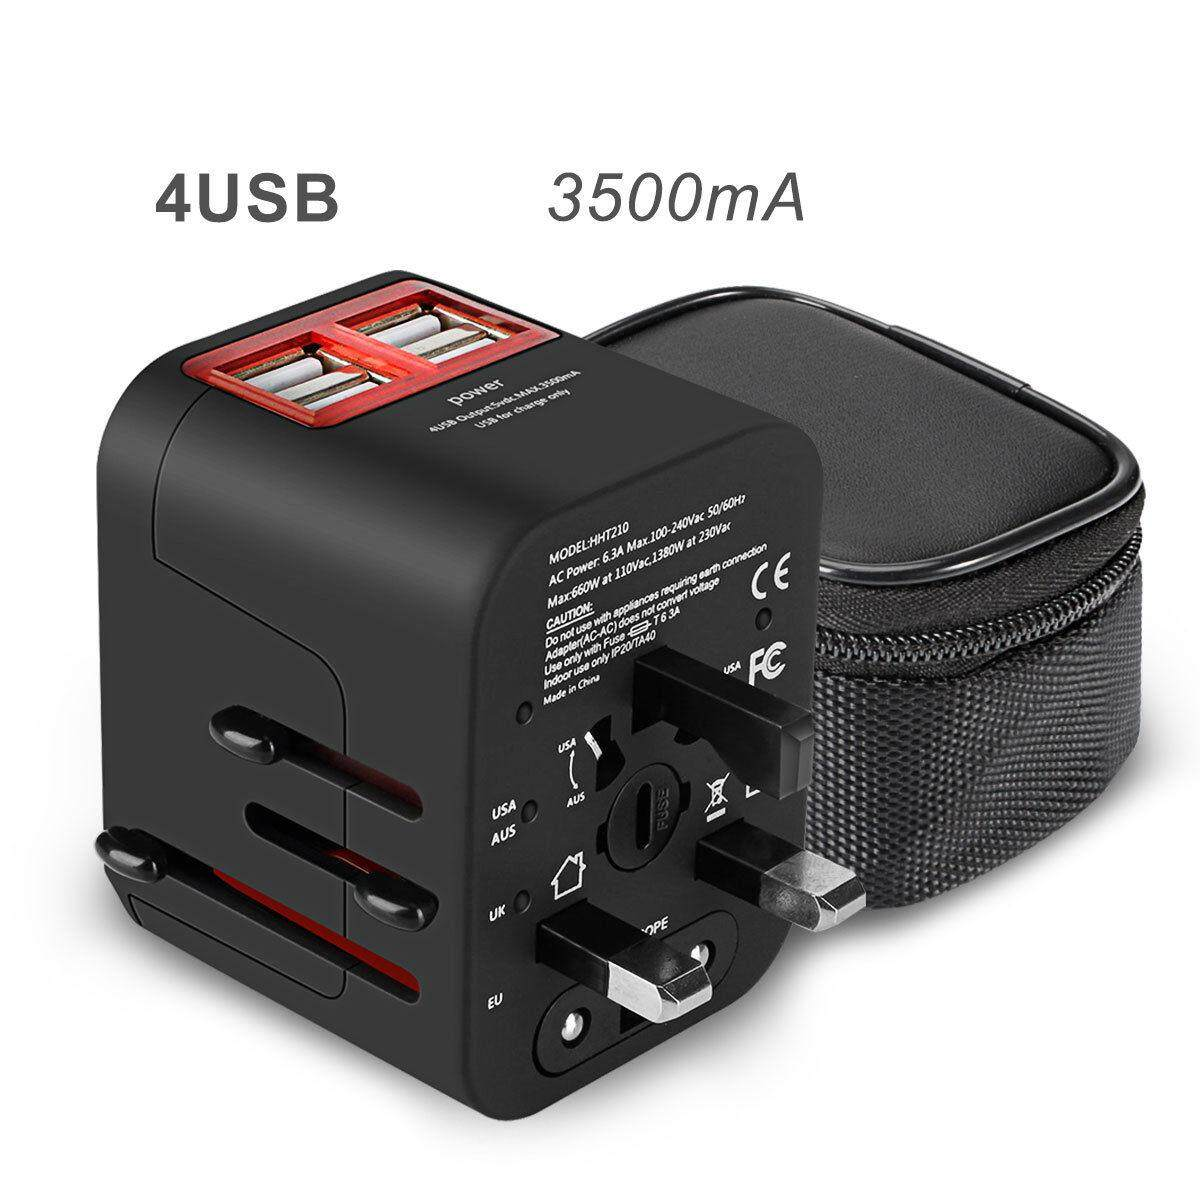 Travel Adapter For Sale Sockets Online Brands Prices Ac 100 240v To Dc 9v 1a Switching Power Supply Converter Eu International Worldwide Charger With 4 Usb Ports Converters